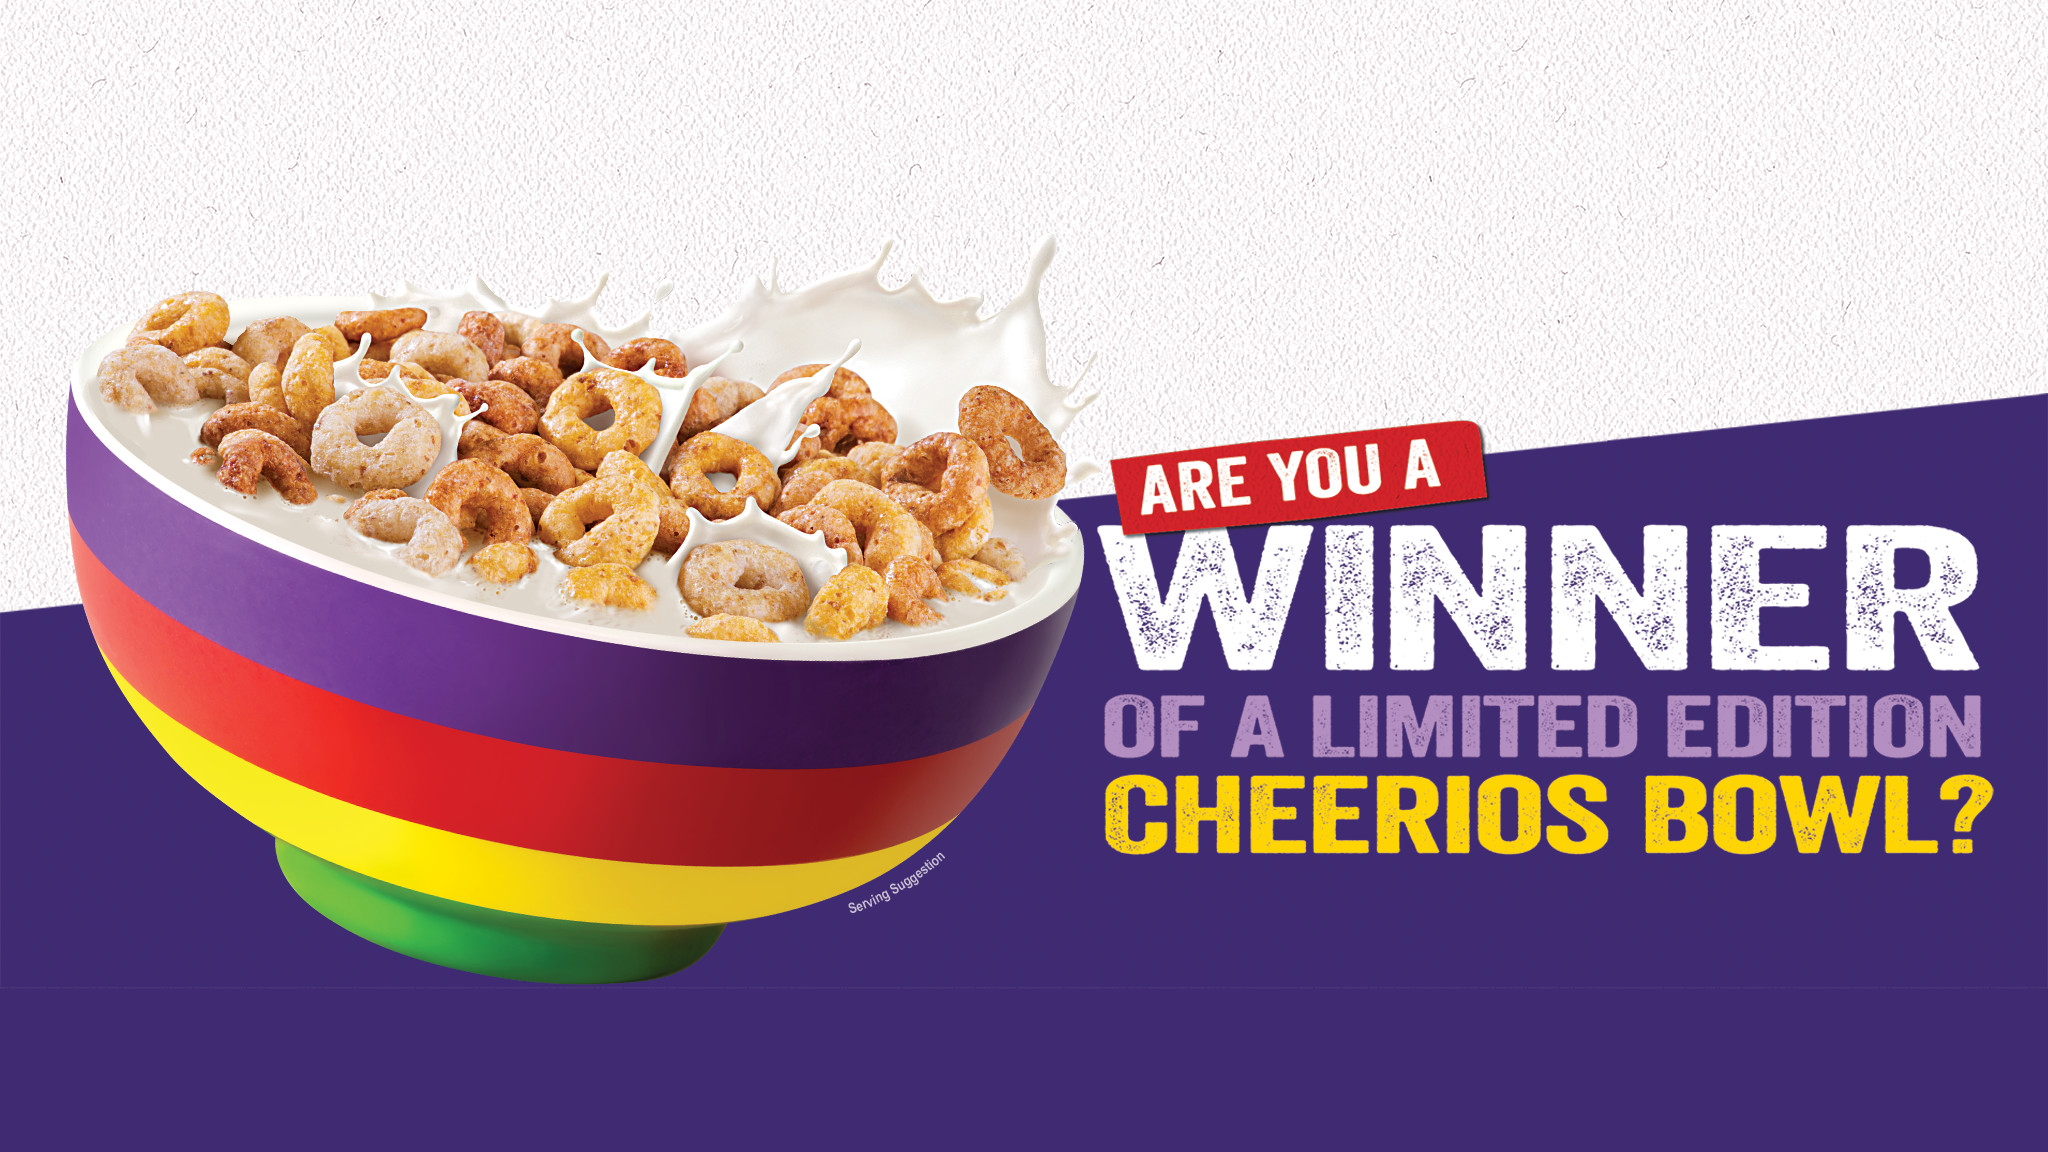 Chance to win a Limited Edition Cheerios Bowl